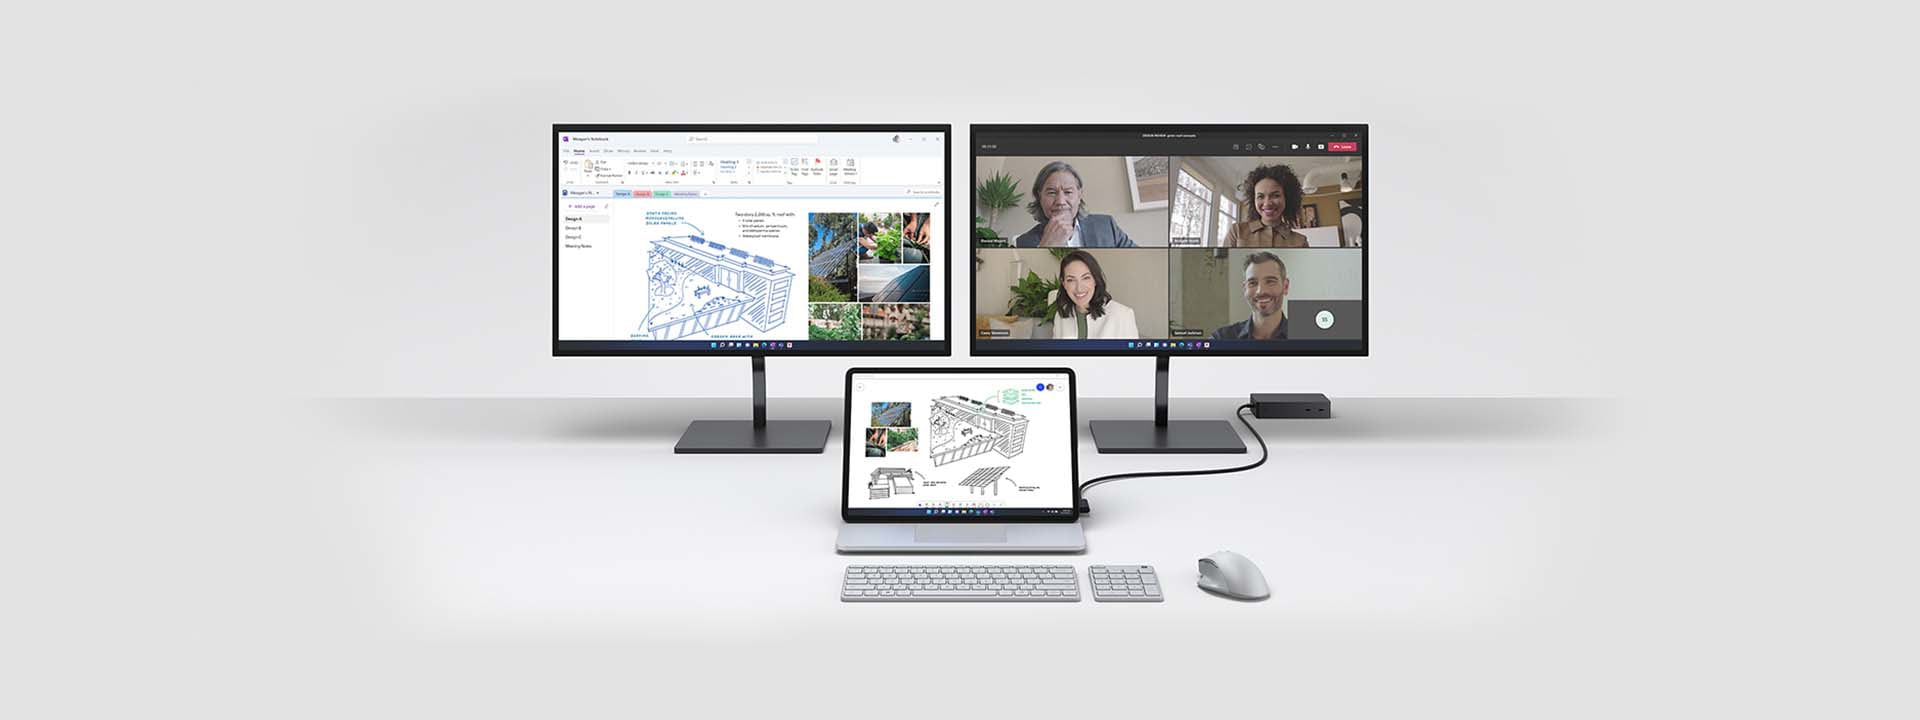 Surface Laptop Studio is shown connected to two external monitors to show ports